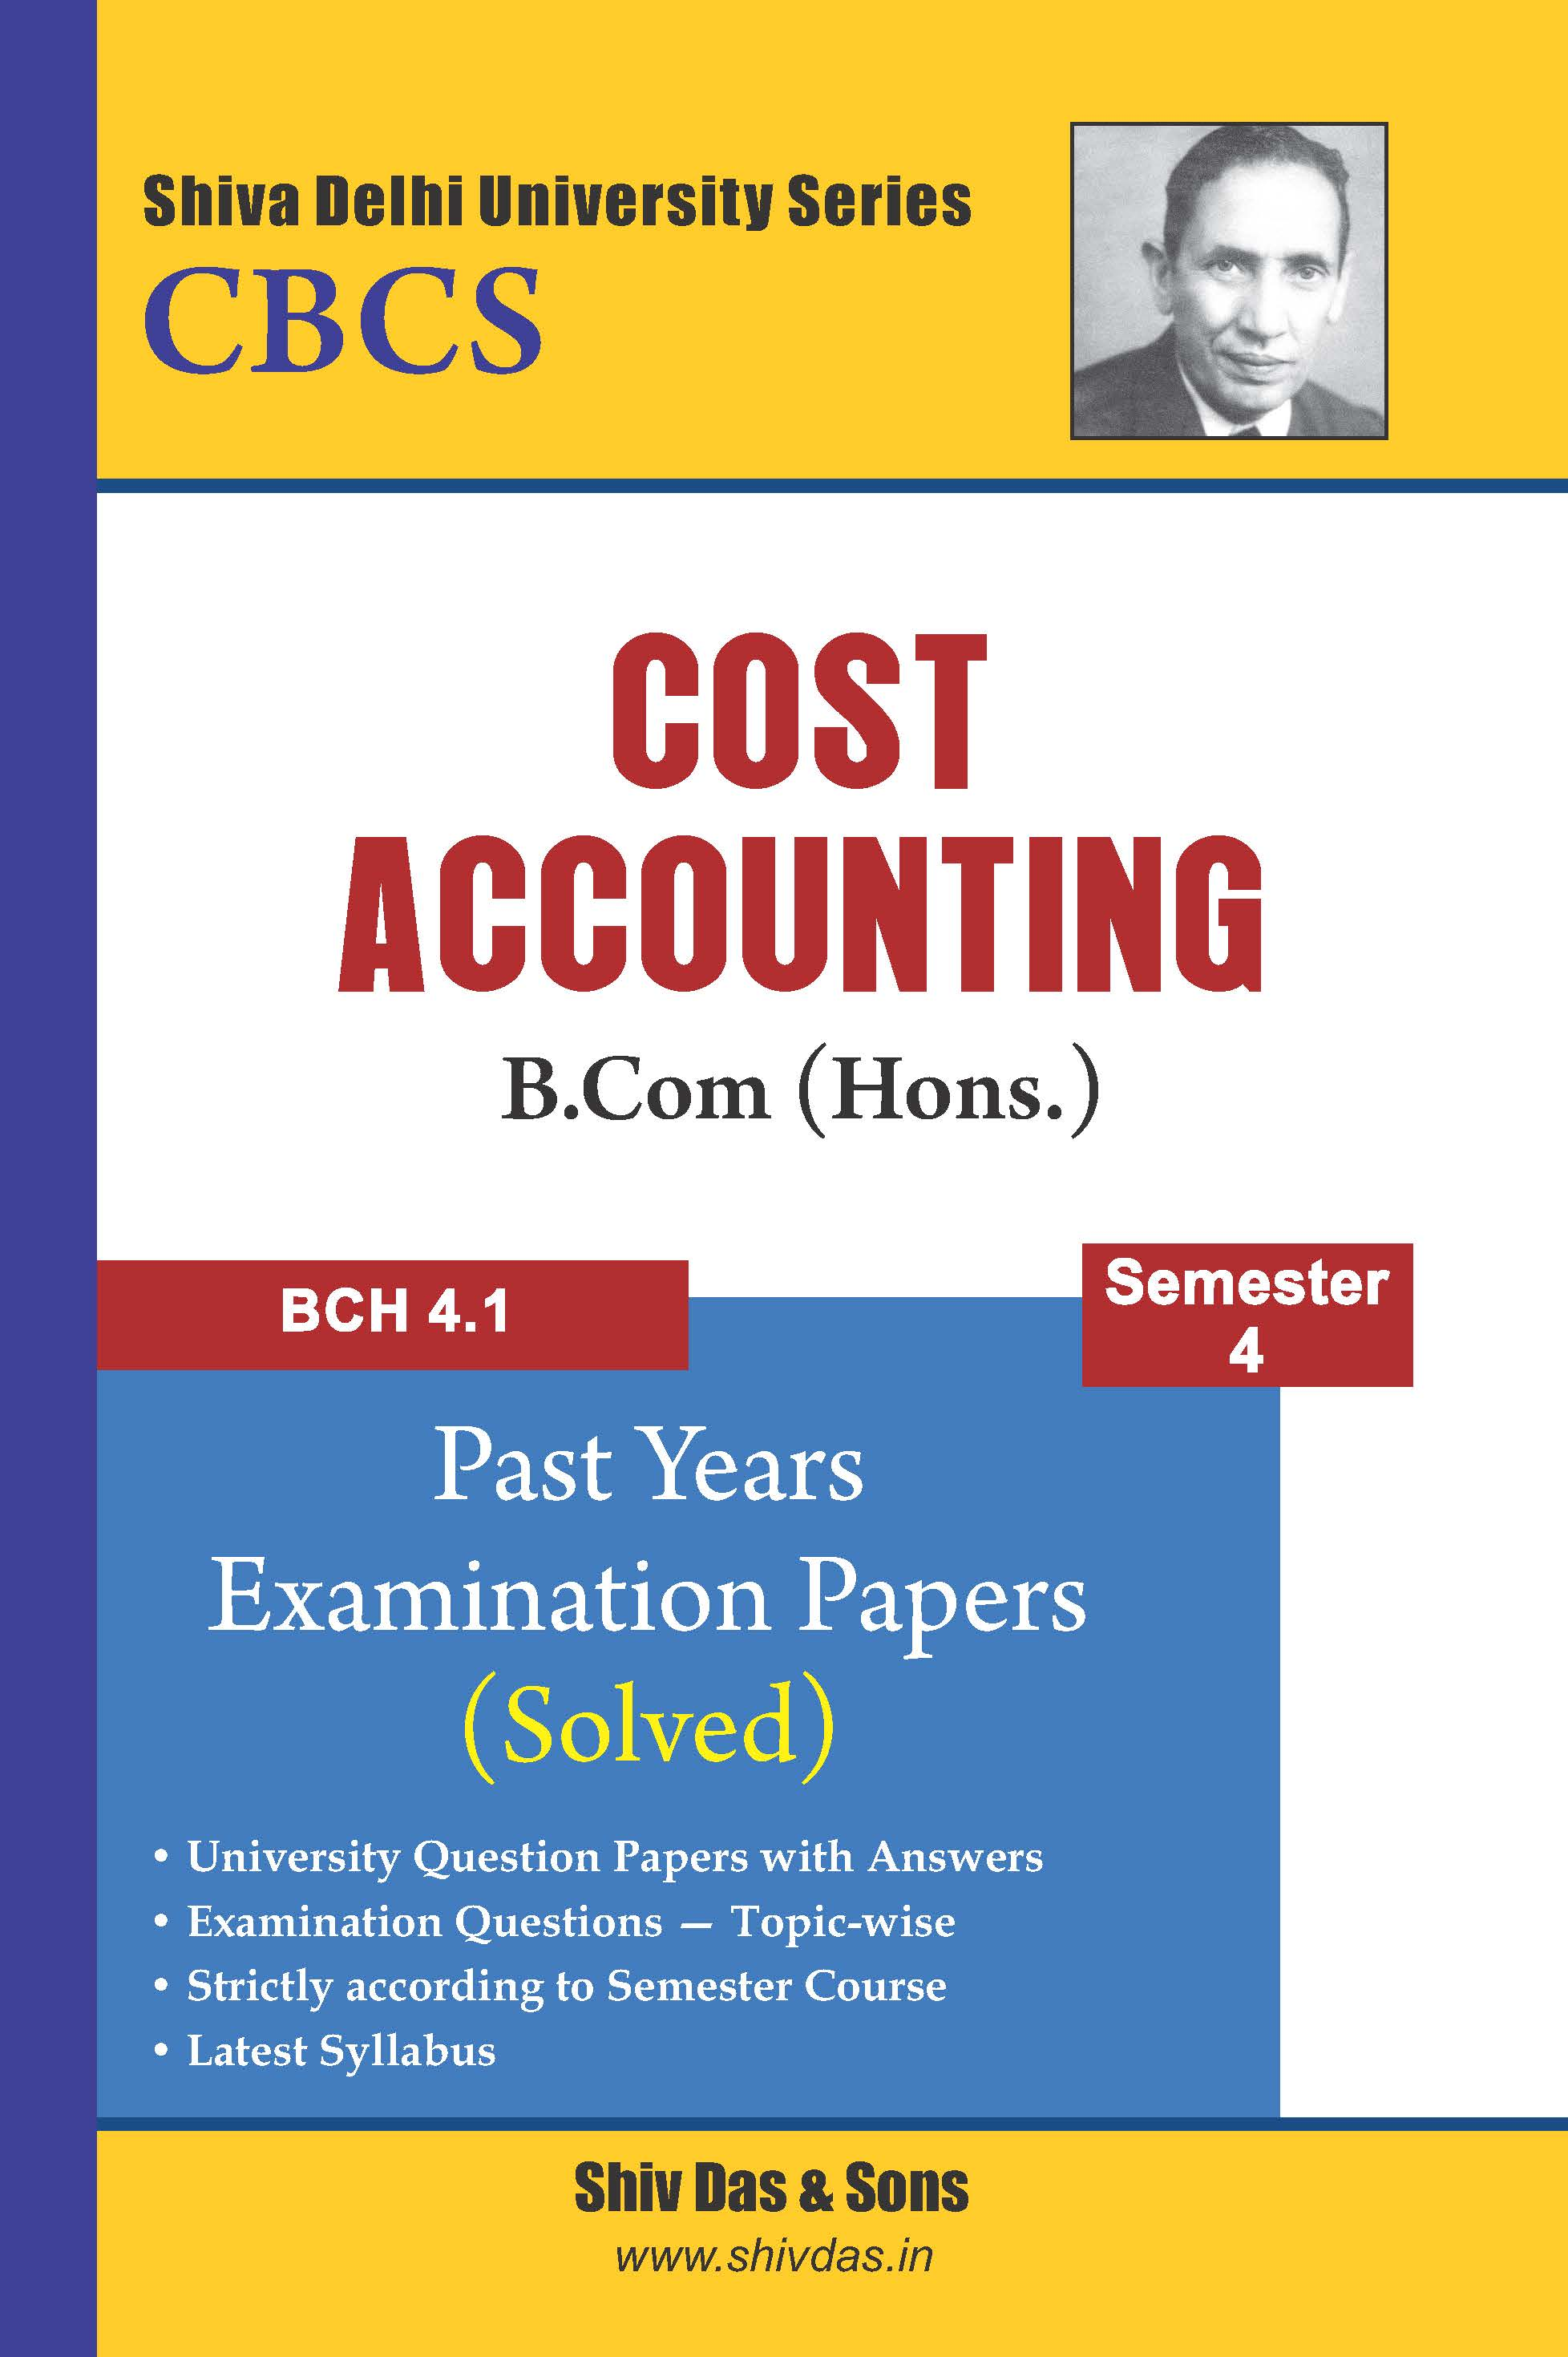 Cost Accounting for B.Com Hons Semester 4